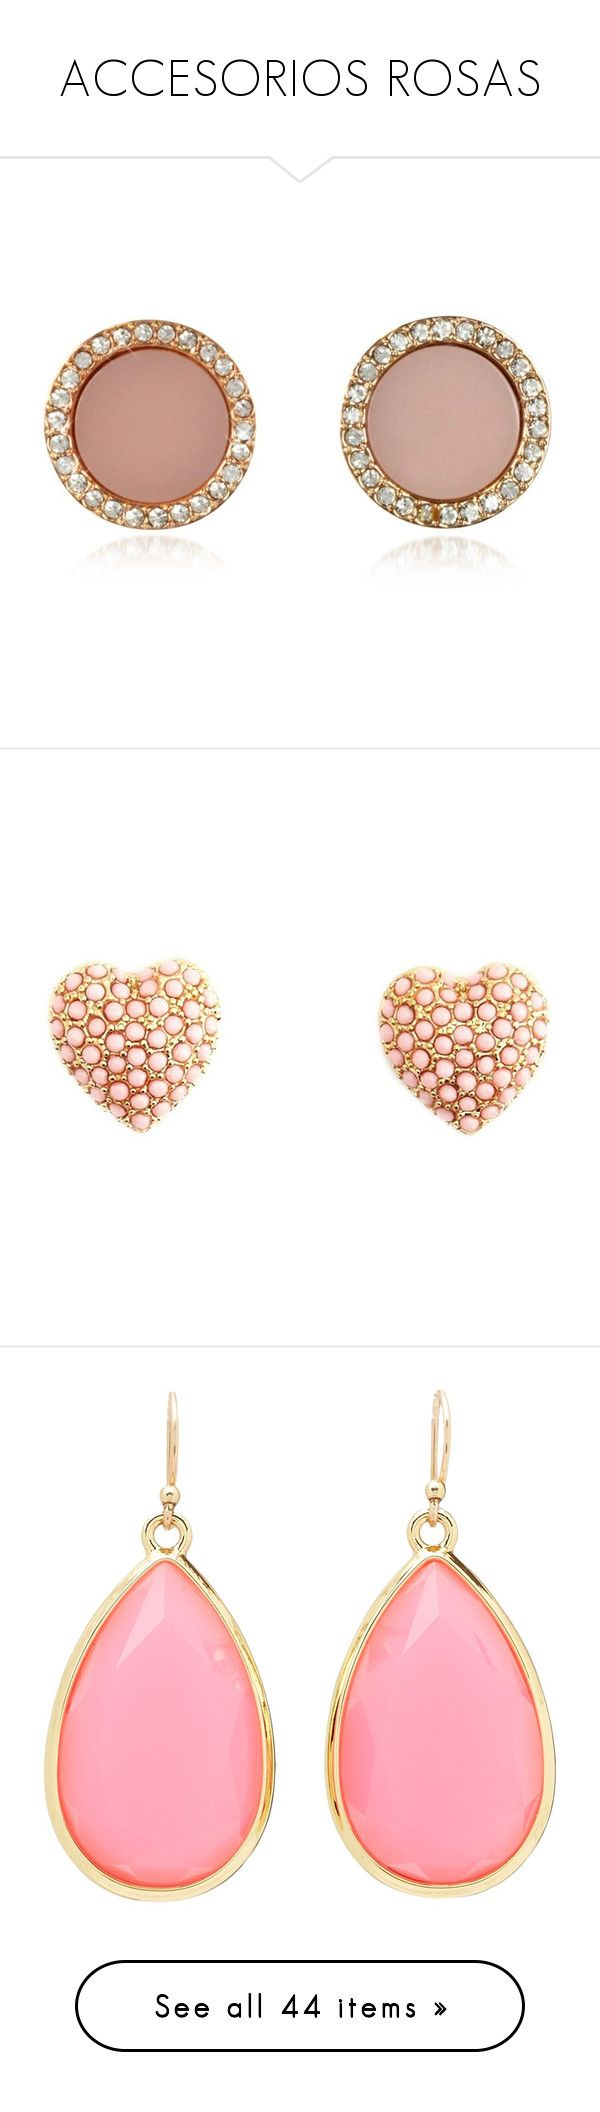 """ACCESORIOS ROSAS"" by infinito01 ❤ liked on Polyvore featuring jewelry, earrings, accessories, brinco, pink, earring jewelry, pave earrings, rose gold stud earrings, pink earrings and pink gold jewelry"